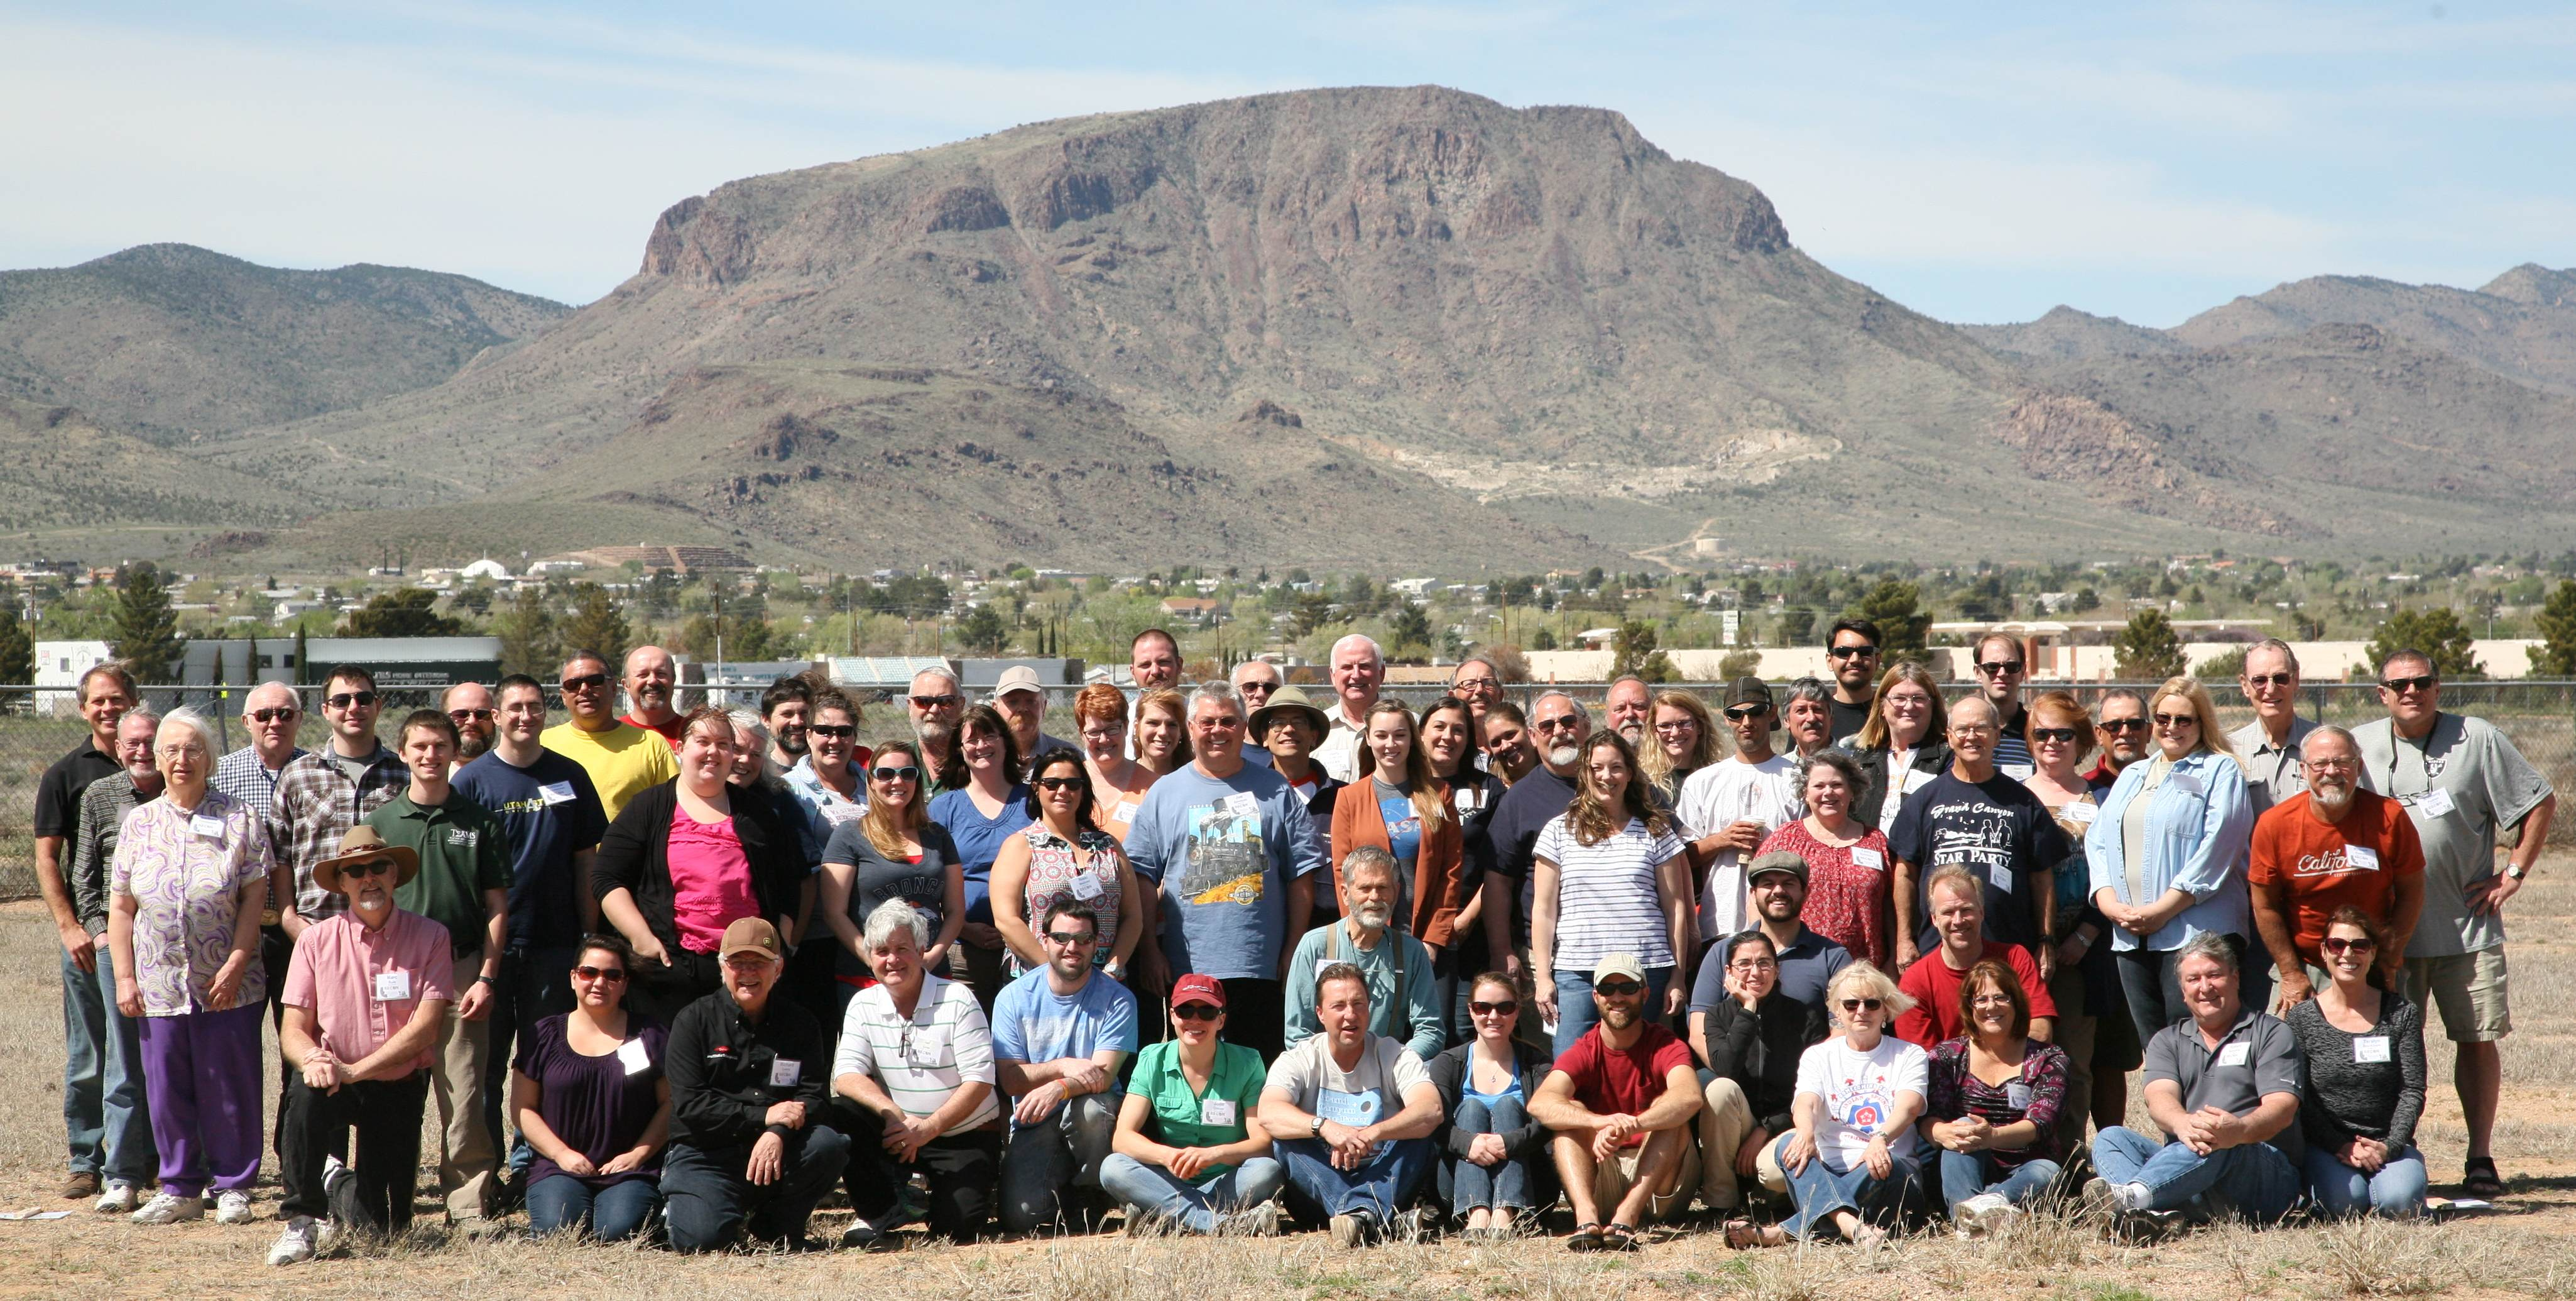 Group photograph from Southern RECON Training Workshop held in Kingman Arizona.